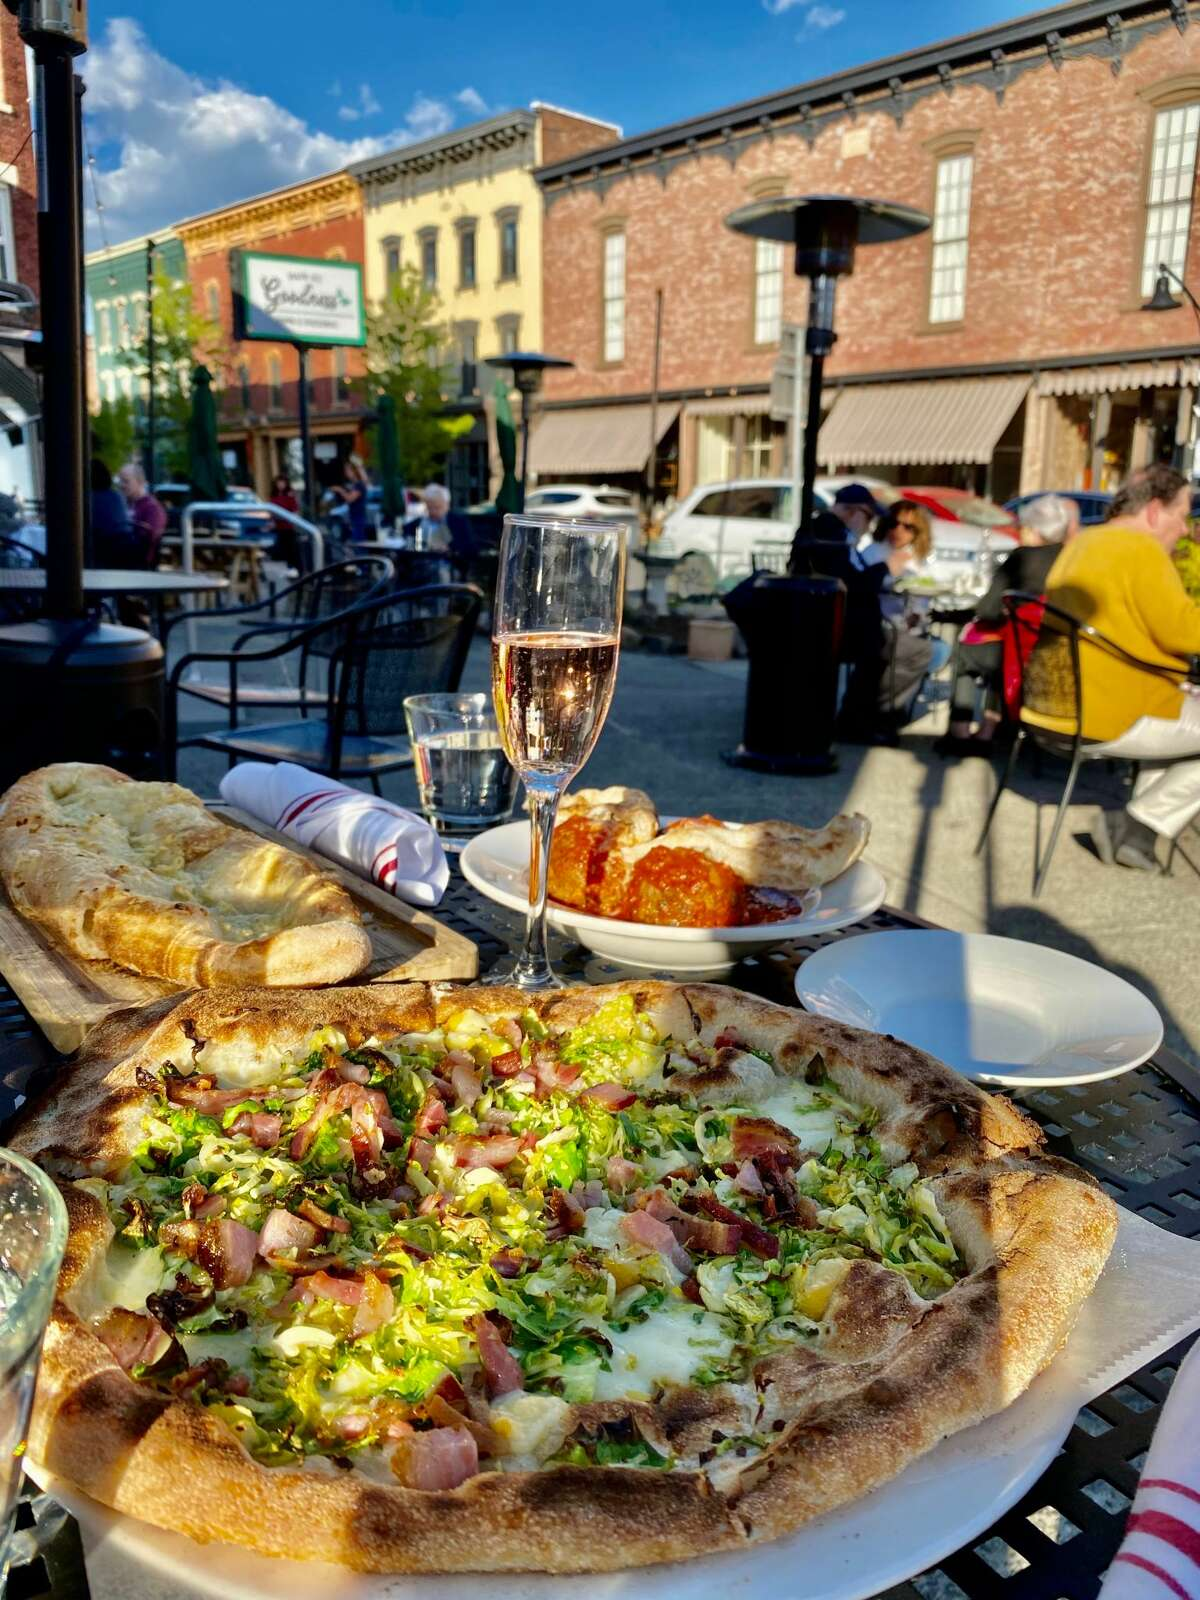 Expansive sidewalks seating and awninged shops and restaurants give downt0wn Chatham a European feel. One of the pizzas at Nonne Pizza & Cucina has prosciutto and shaved Brussels sprouts.